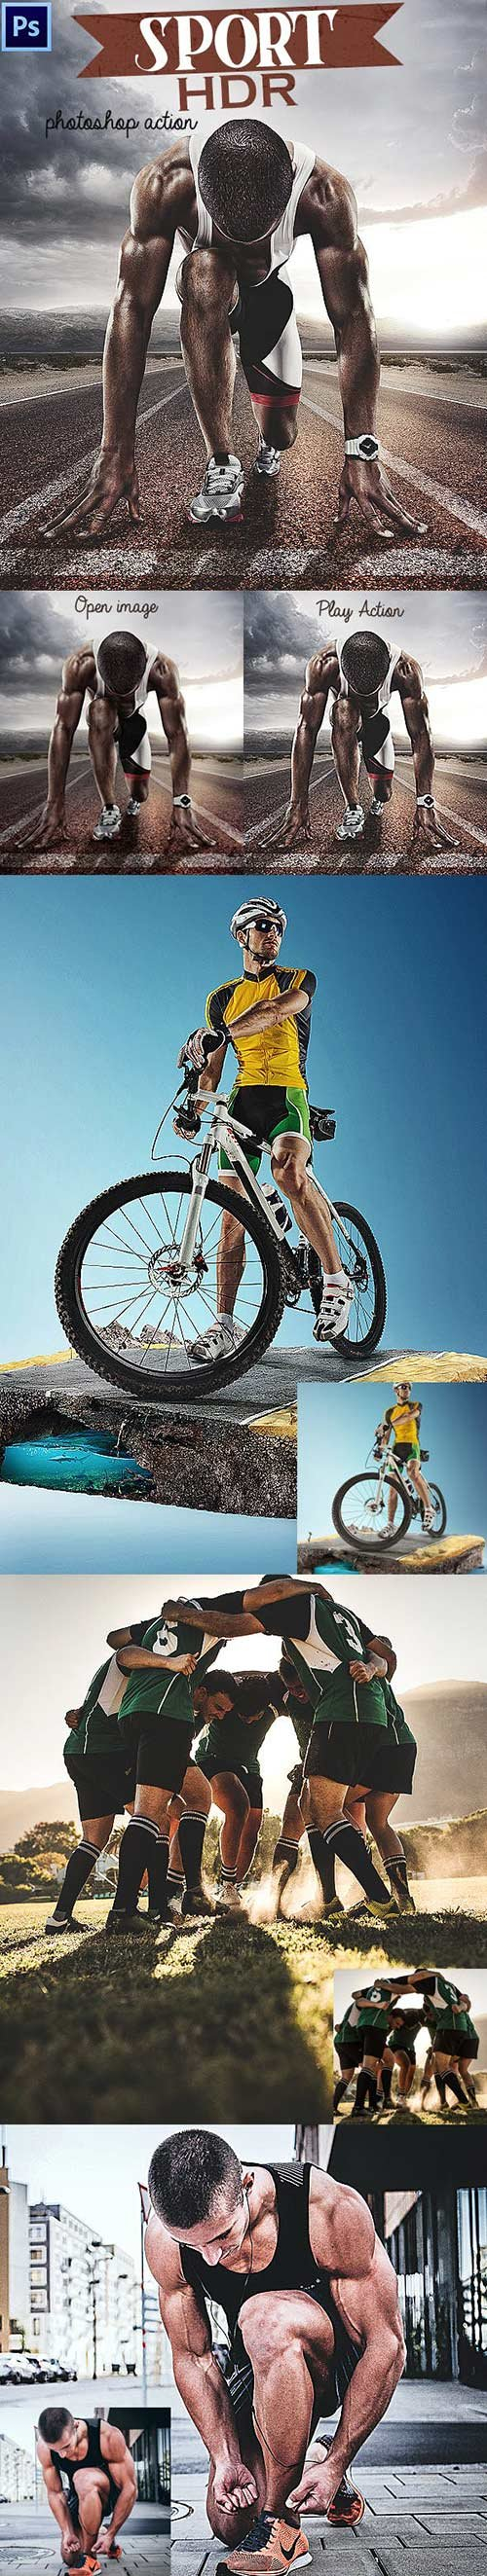 GraphicRiver - Sport HDR Photoshop Action 23105138